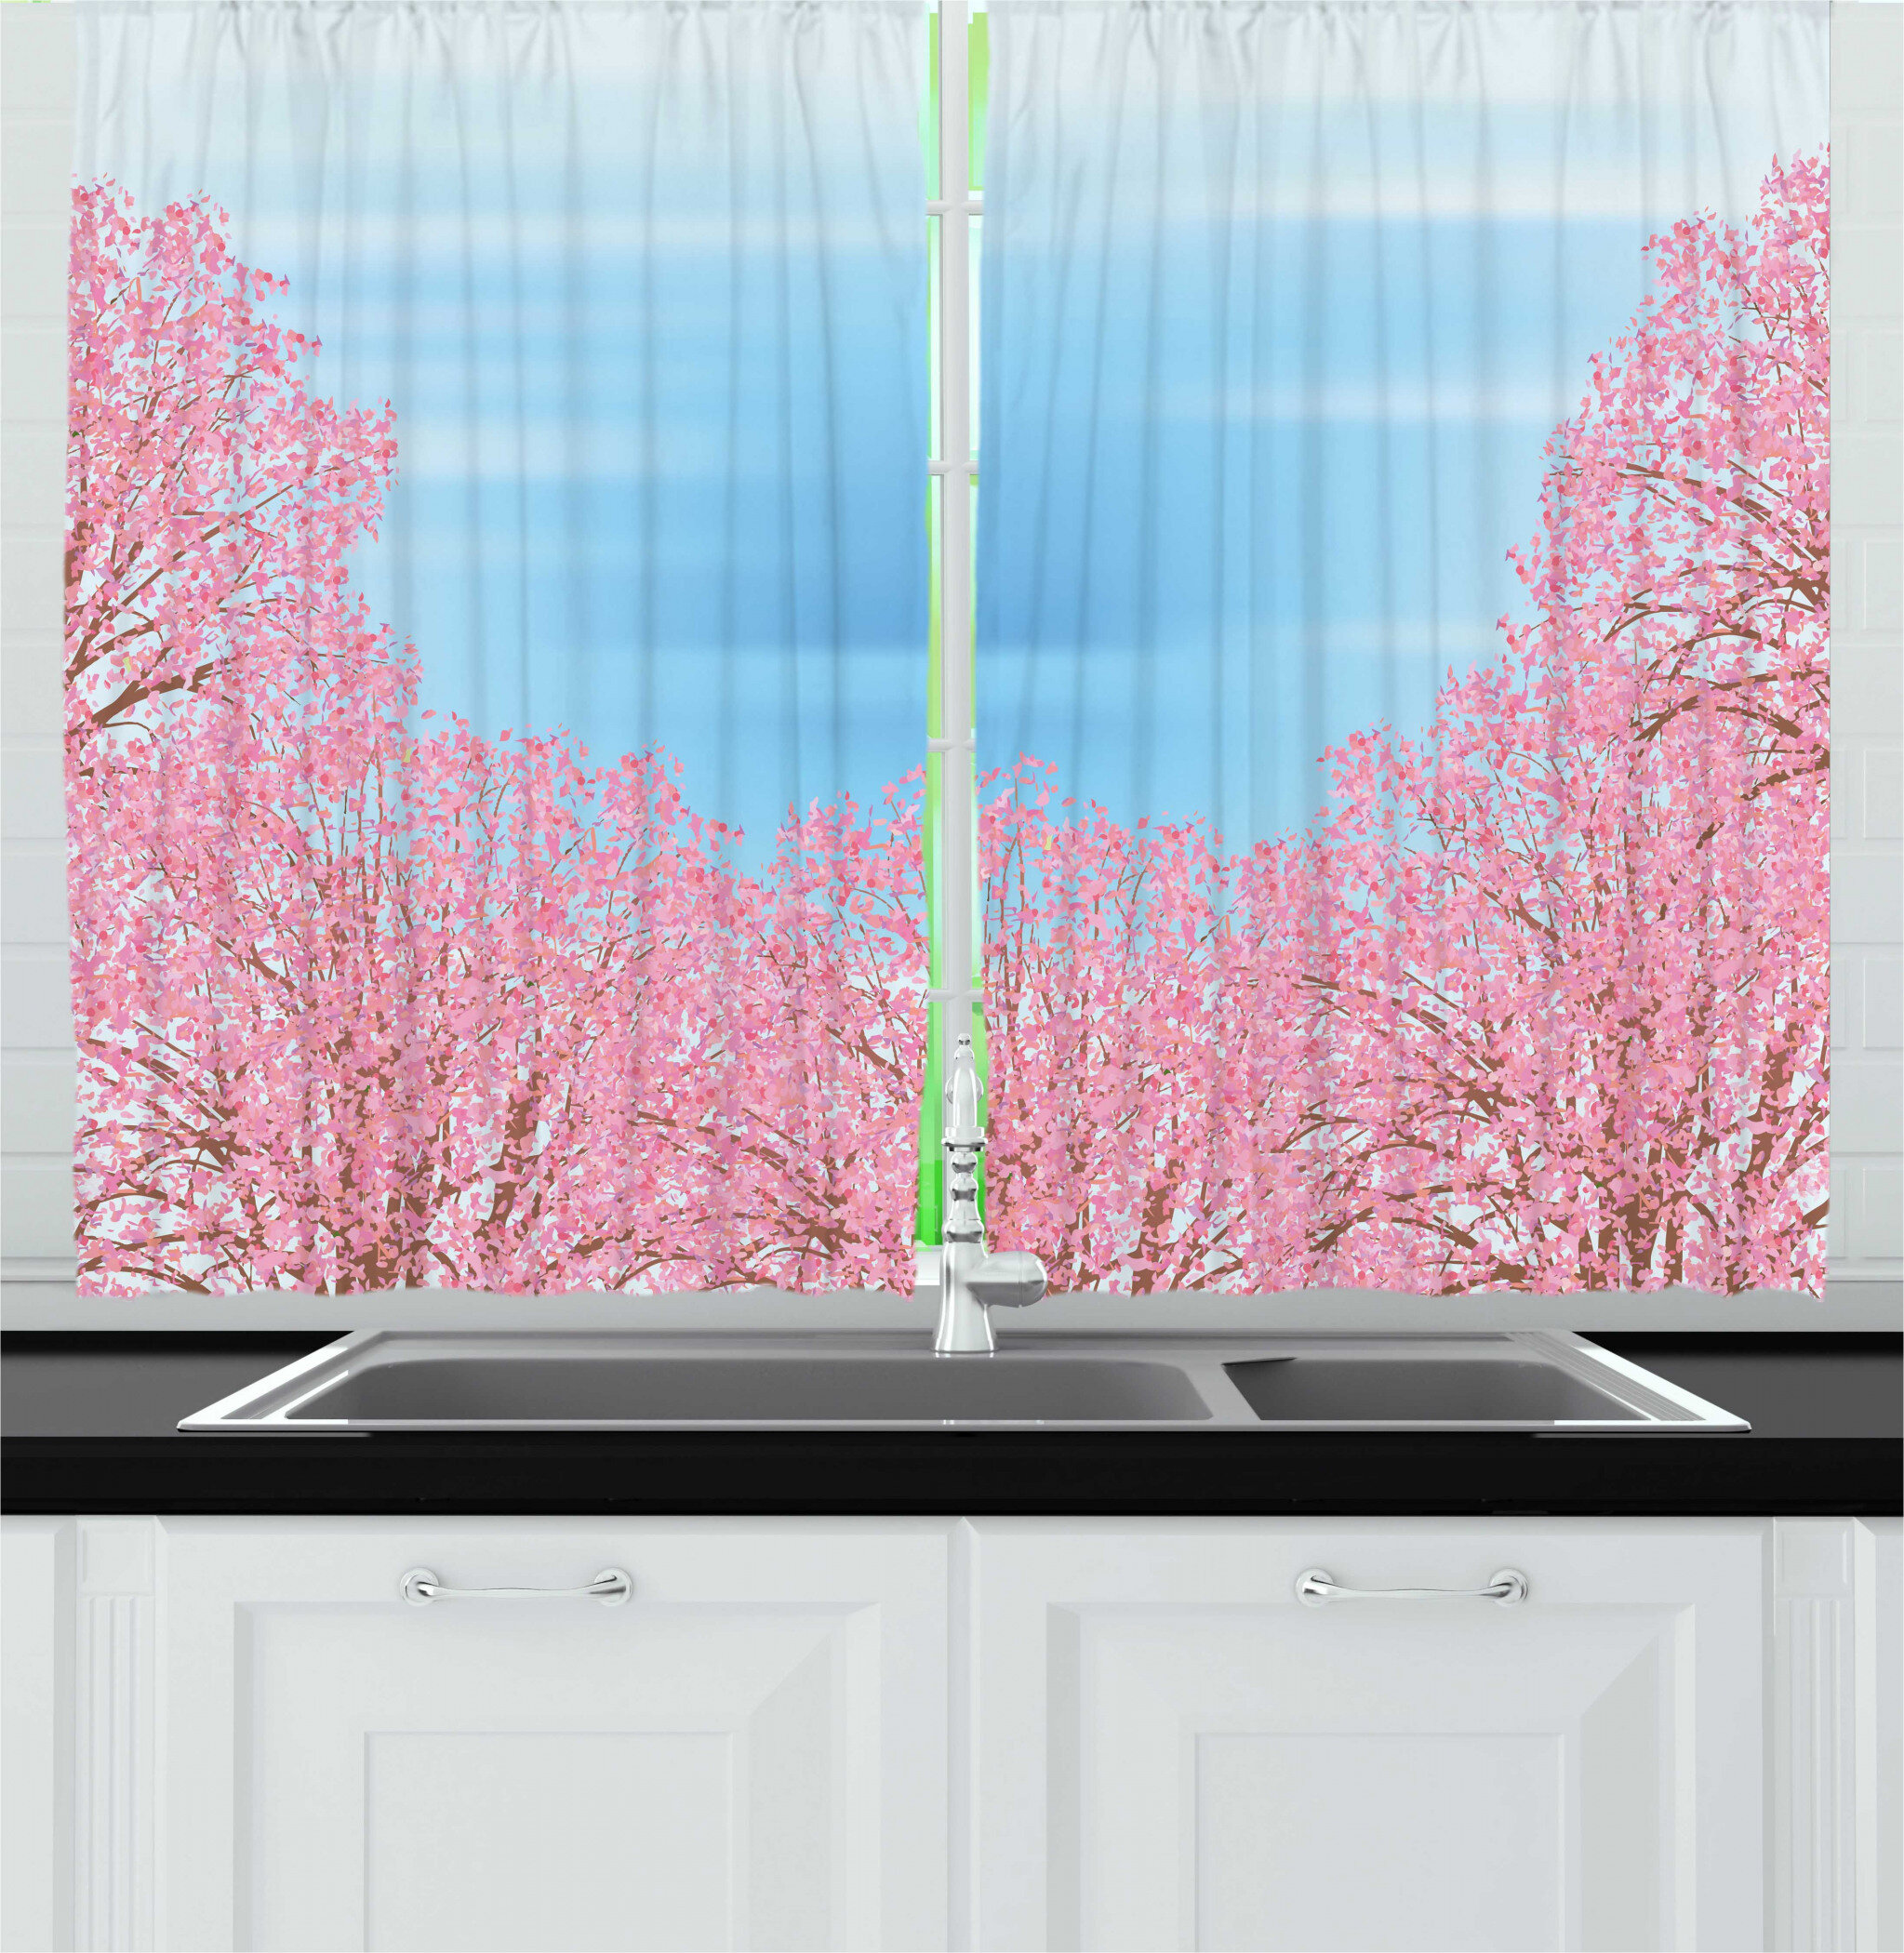 East Urban Home 2 Piece Blue And Pink Pinkish Cherry Blossom Trees In Spring Image Kitchen Curtain Set Wayfair